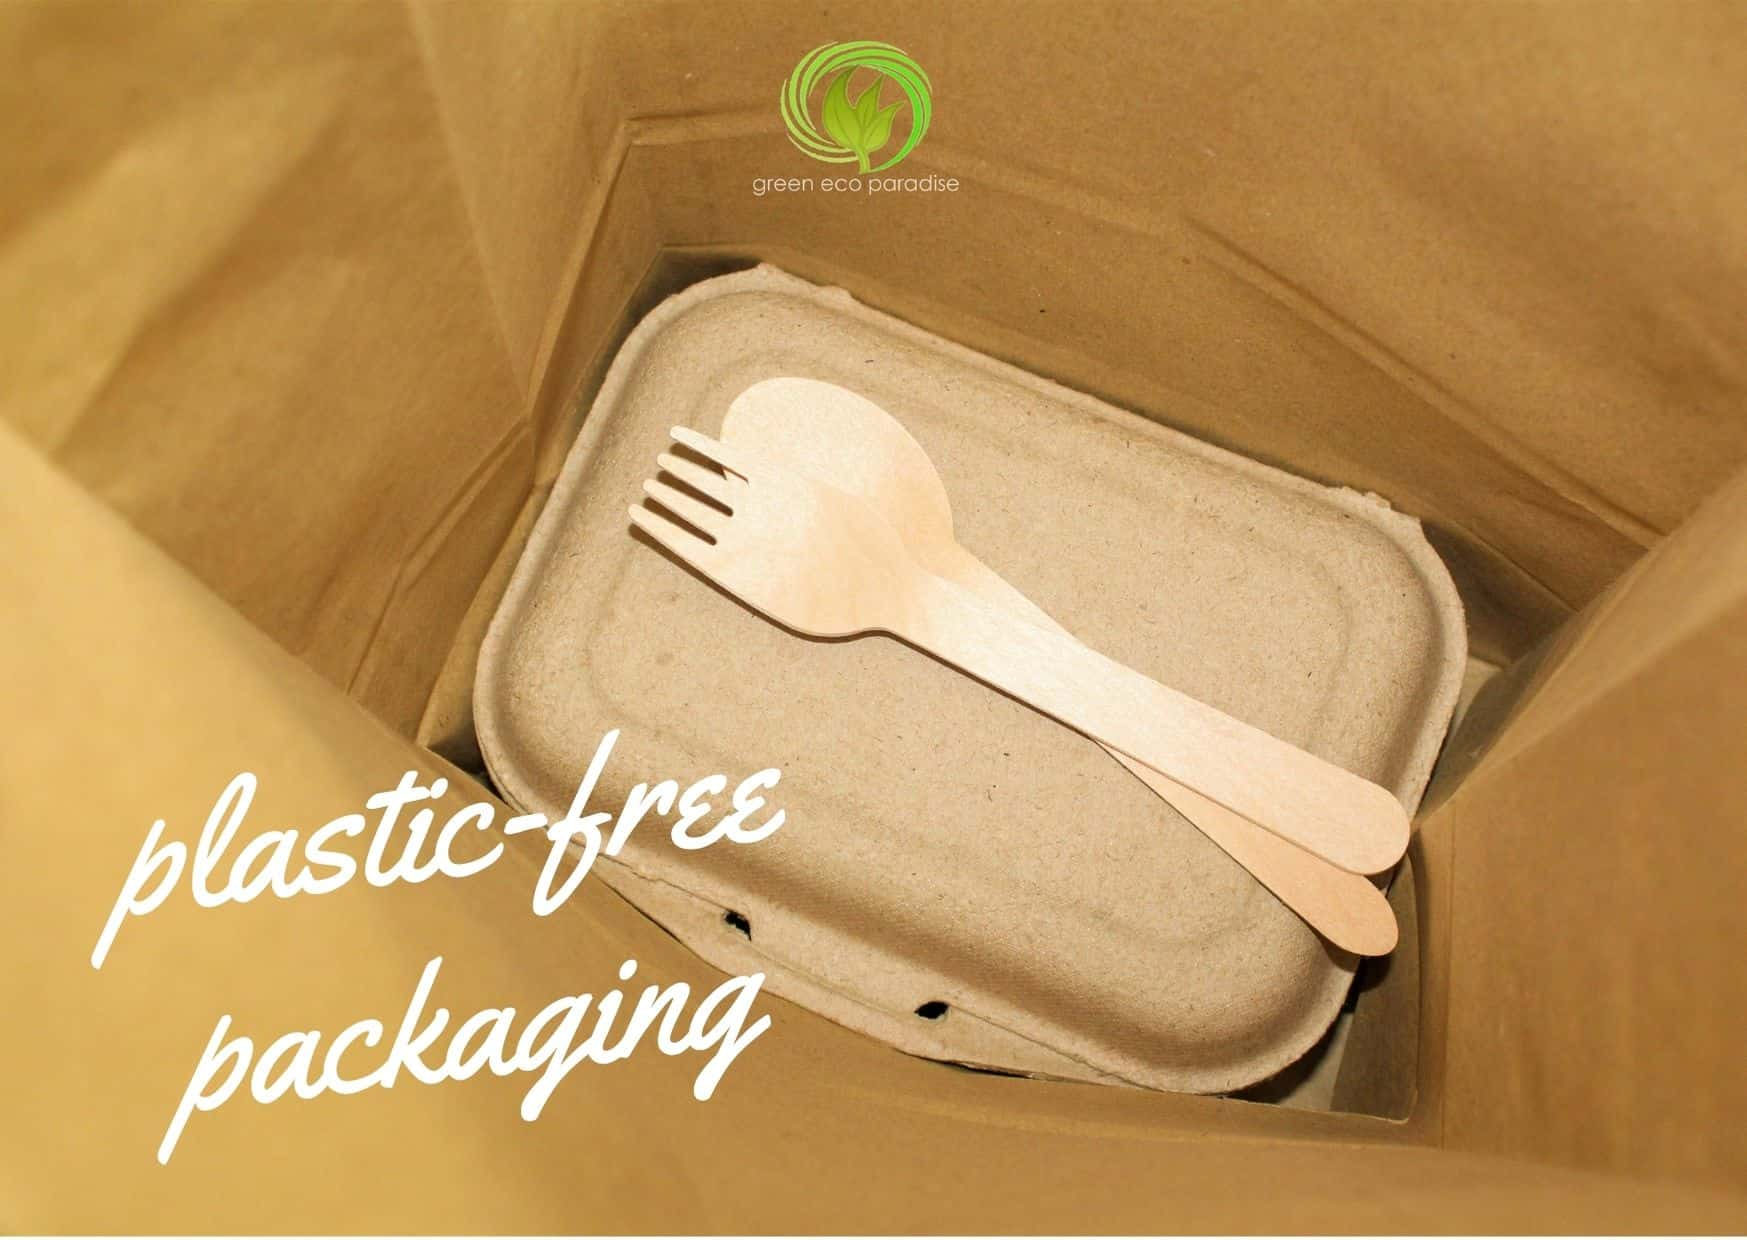 A biodegradable lunch box, wooden fork and spoon in a paper bag.